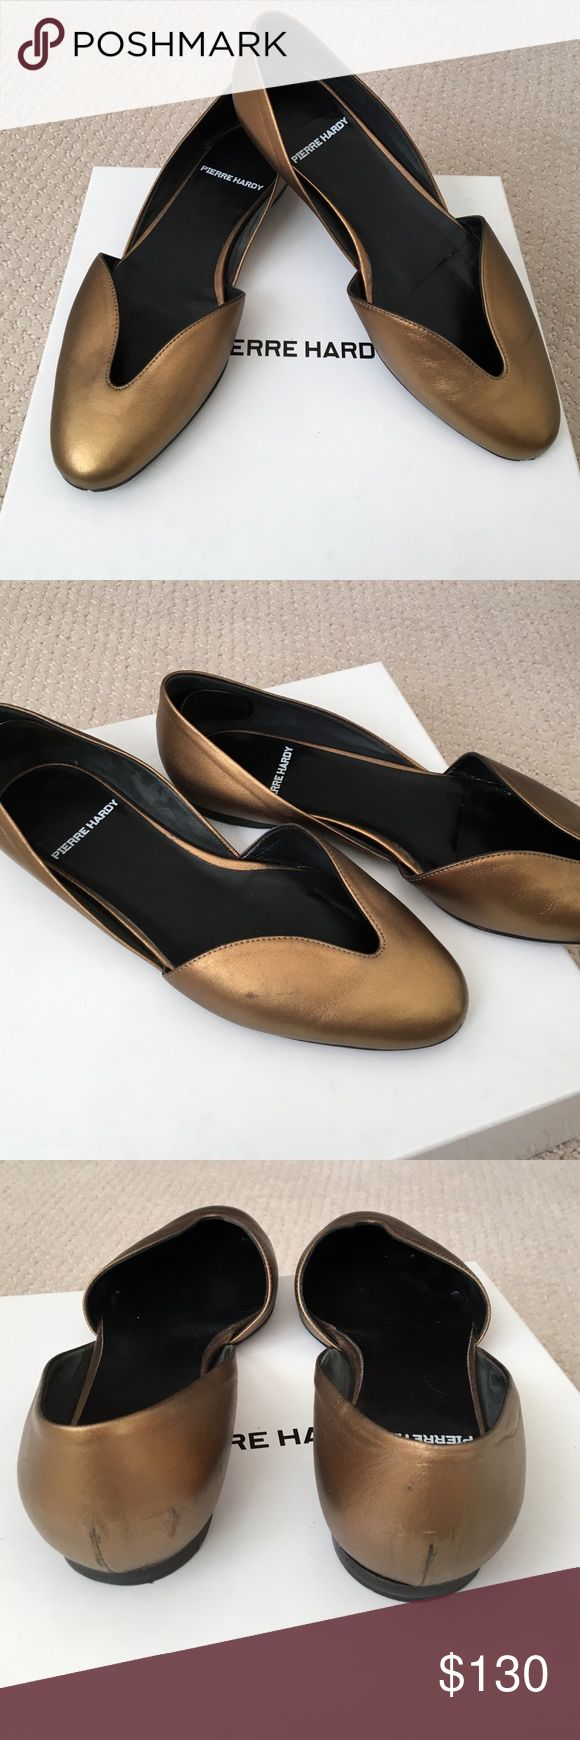 Pierre Hardy gold flats Good used condition. A few signs of wear as shown in above pictures.  Color is a bronze gold. Pierre Hardy Shoes Flats & Loafers